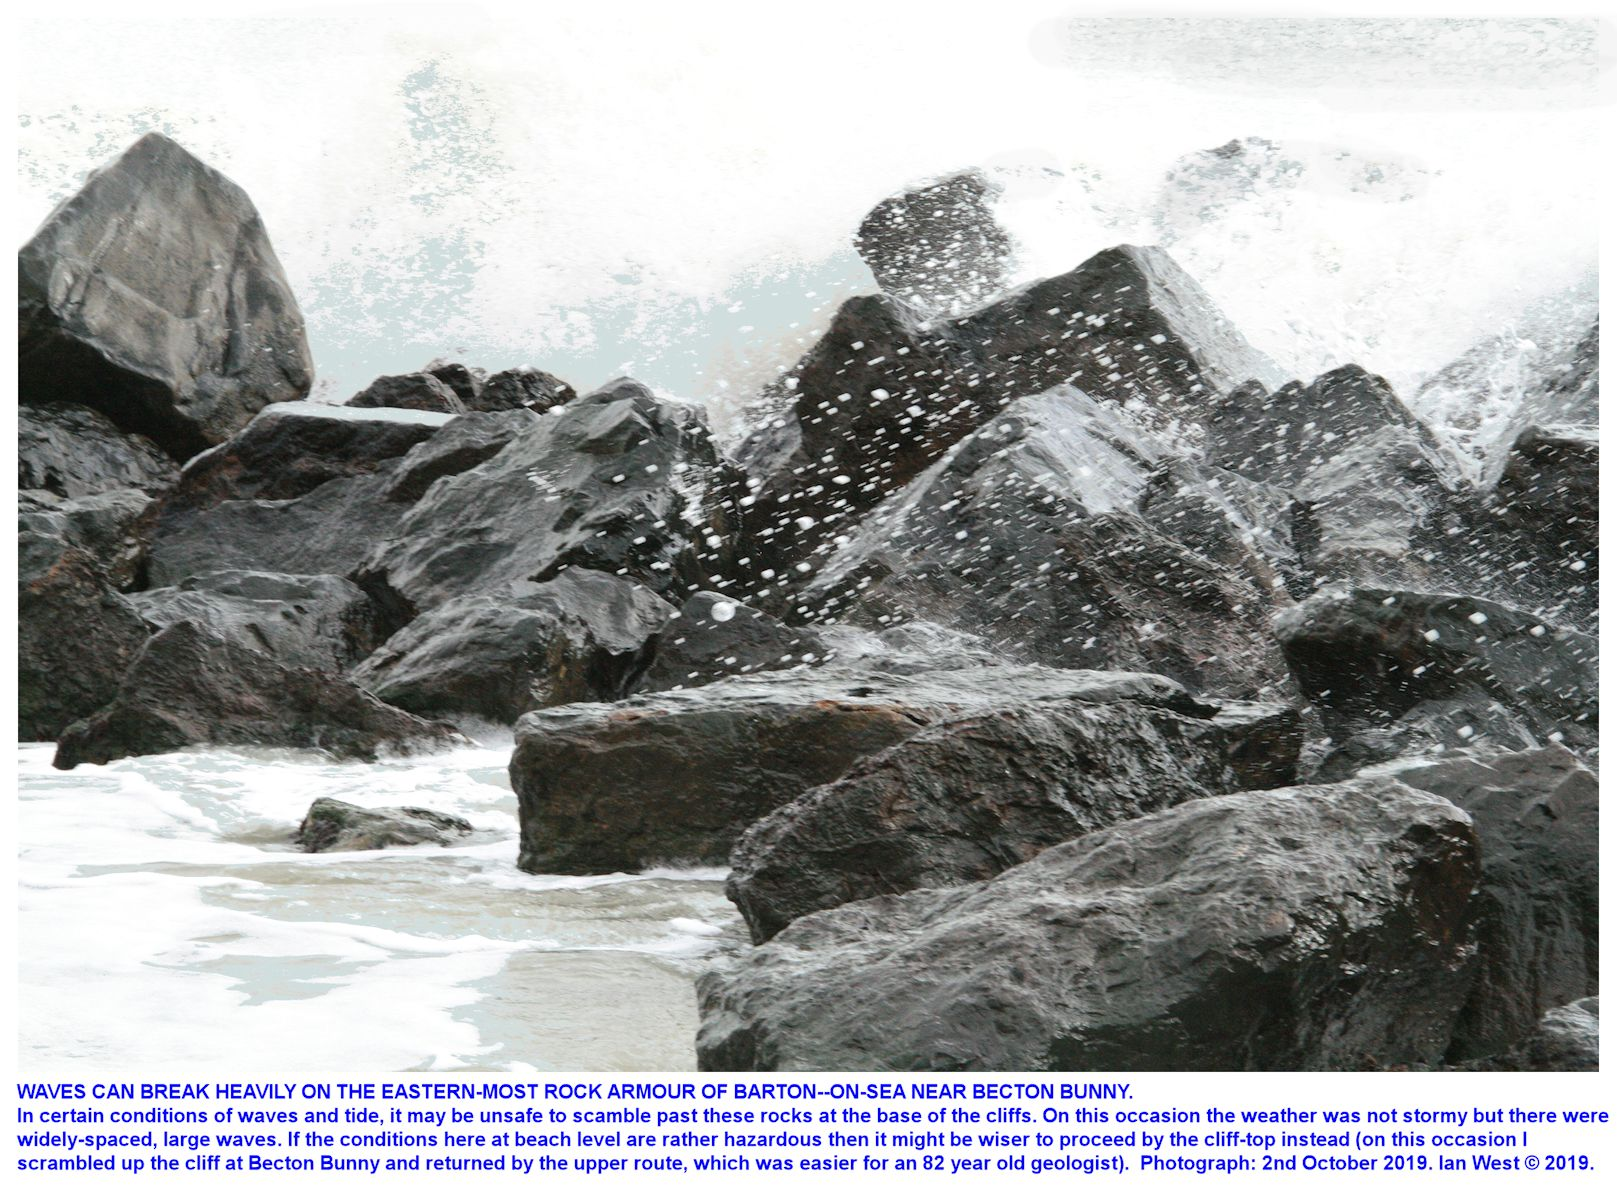 Take care to avoid breaking waves if passing the rocks at the eastern end of the Barton rock armour - and do not use this route if the conditions here are hazardous, photograph - pm., 8th October 2019, Ian West